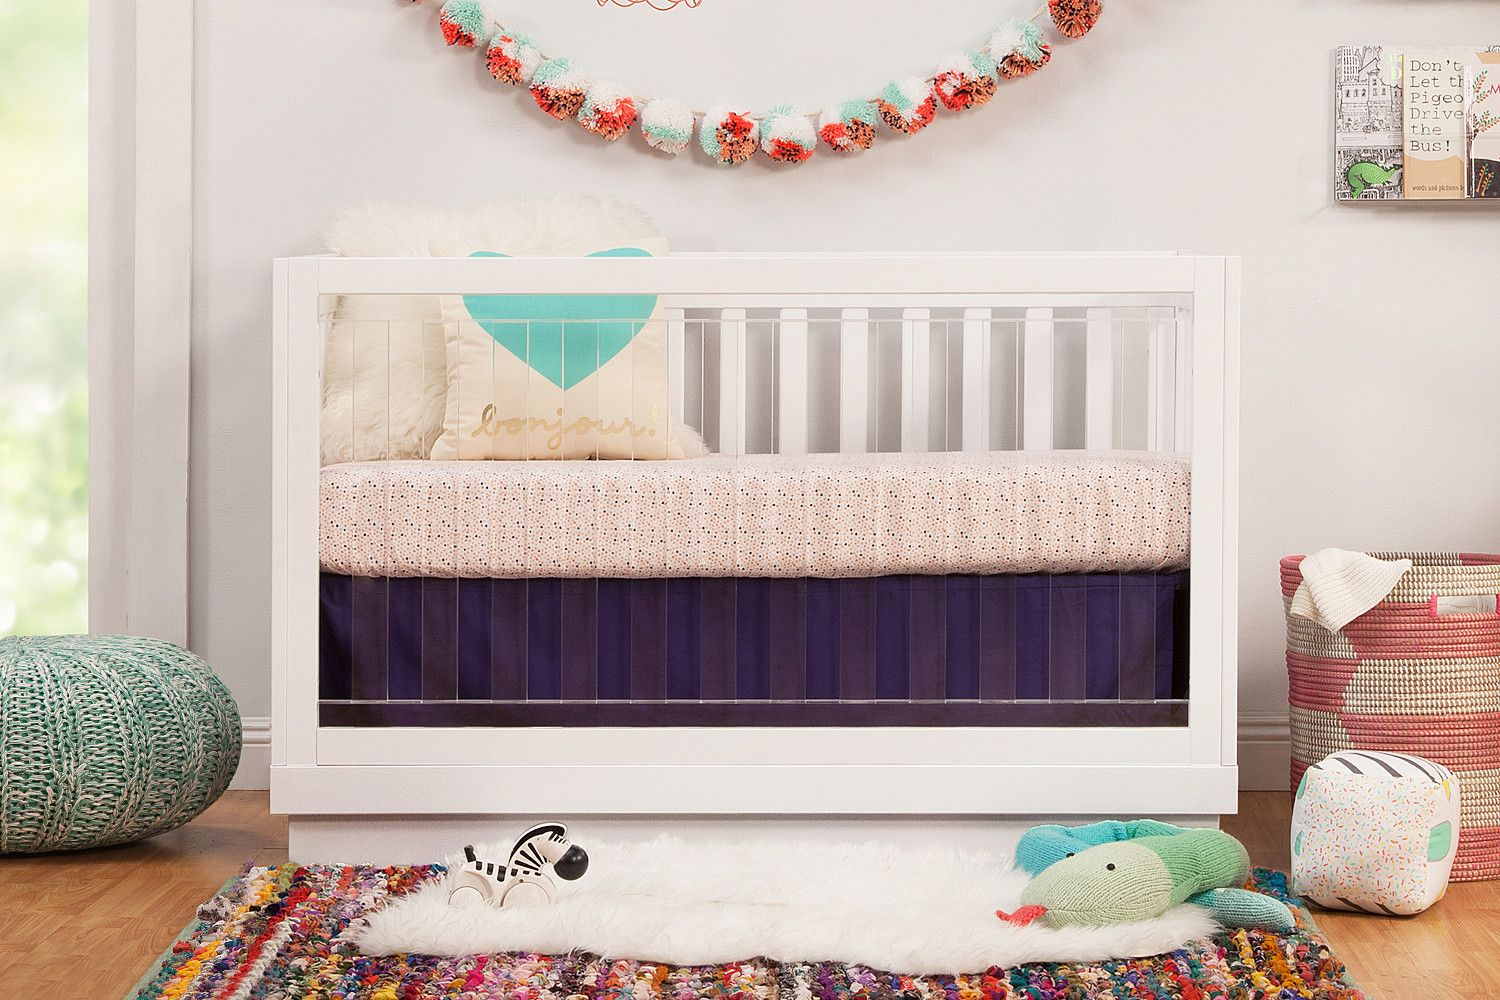 Harlow Acrylic 3 In 1 Convertible Crib With Toddler Bed Conversion Kit Convertible Crib Toddler Bed Cribs